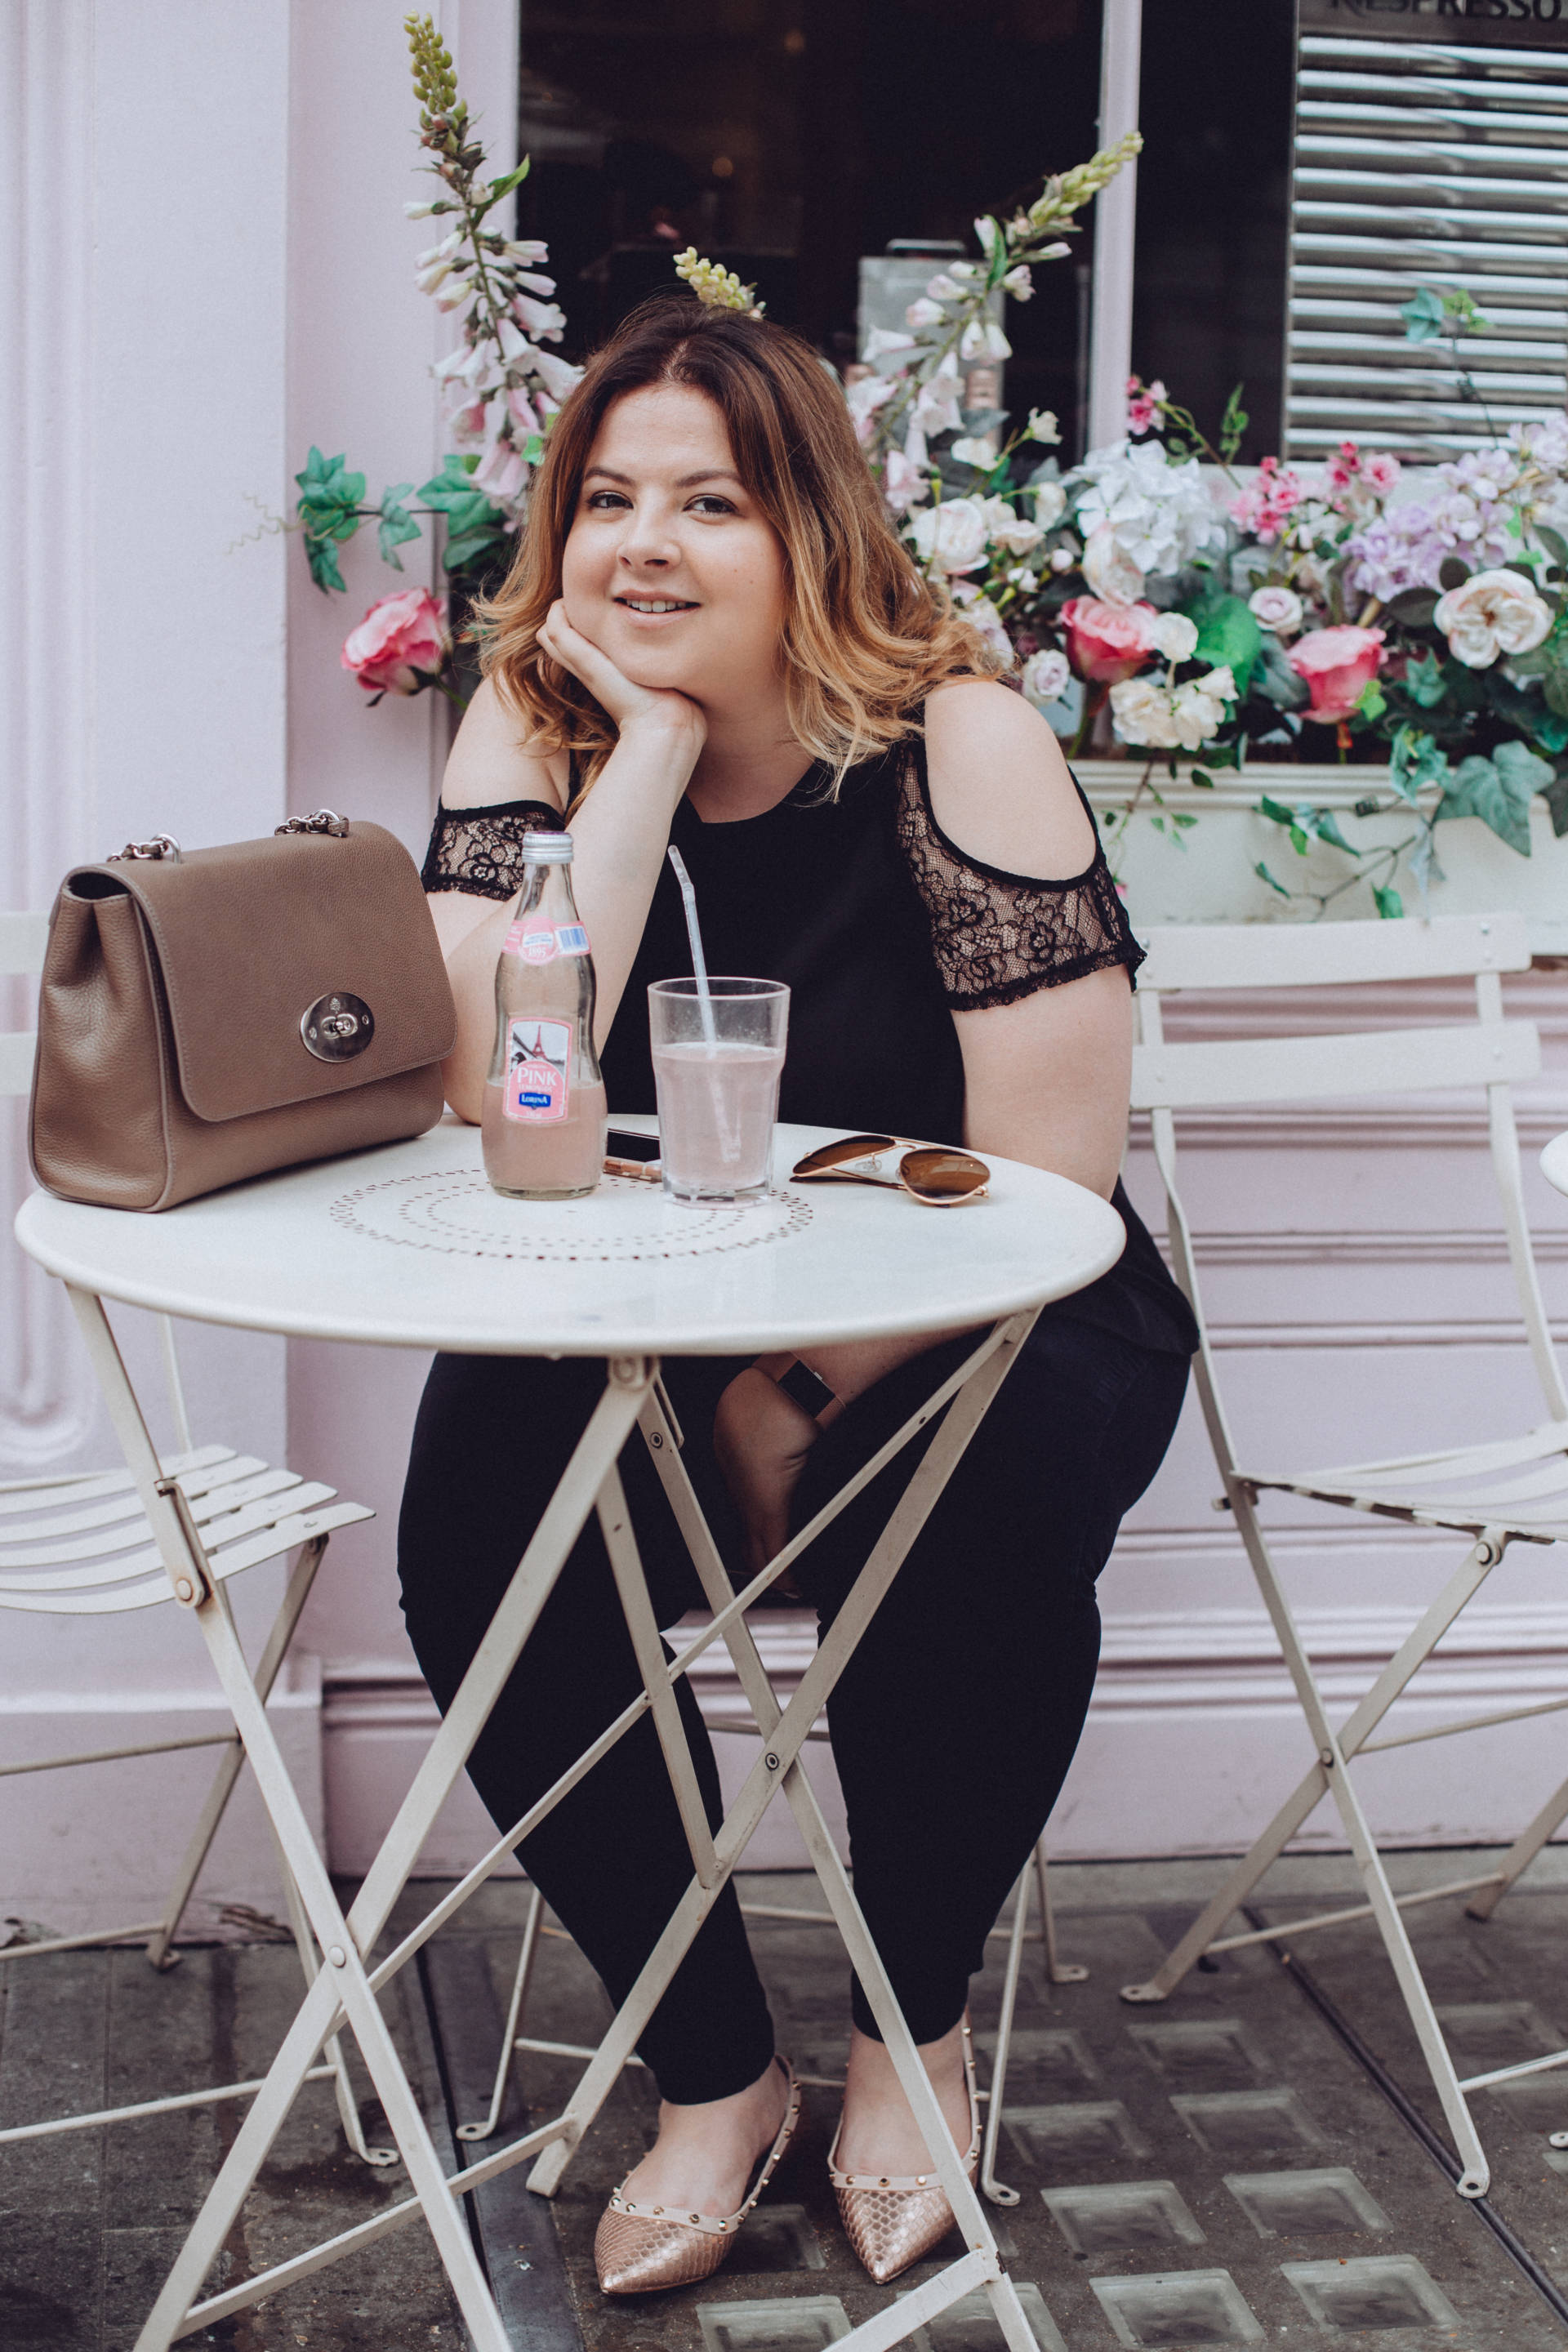 How I afford luxury handbags, and how you can too